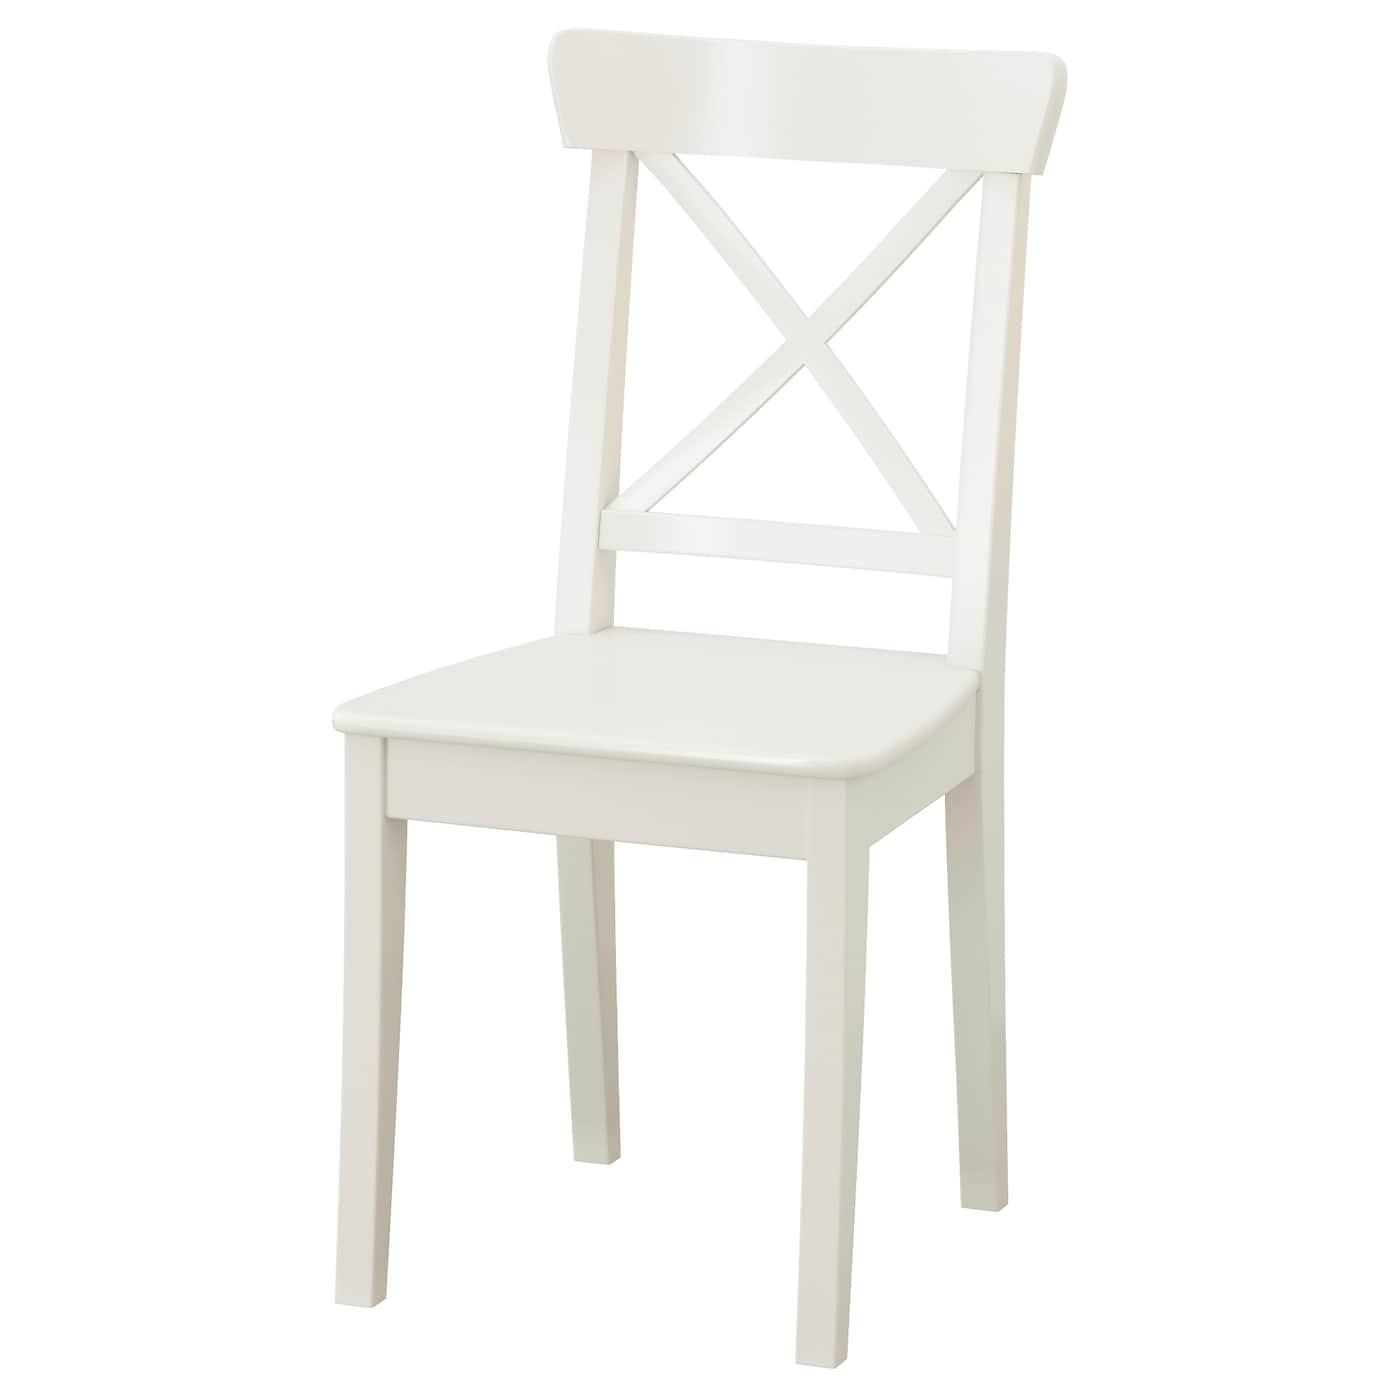 Charmant IKEA INGOLF Chair Solid Wood Is A Hard Wearing Natural Material.